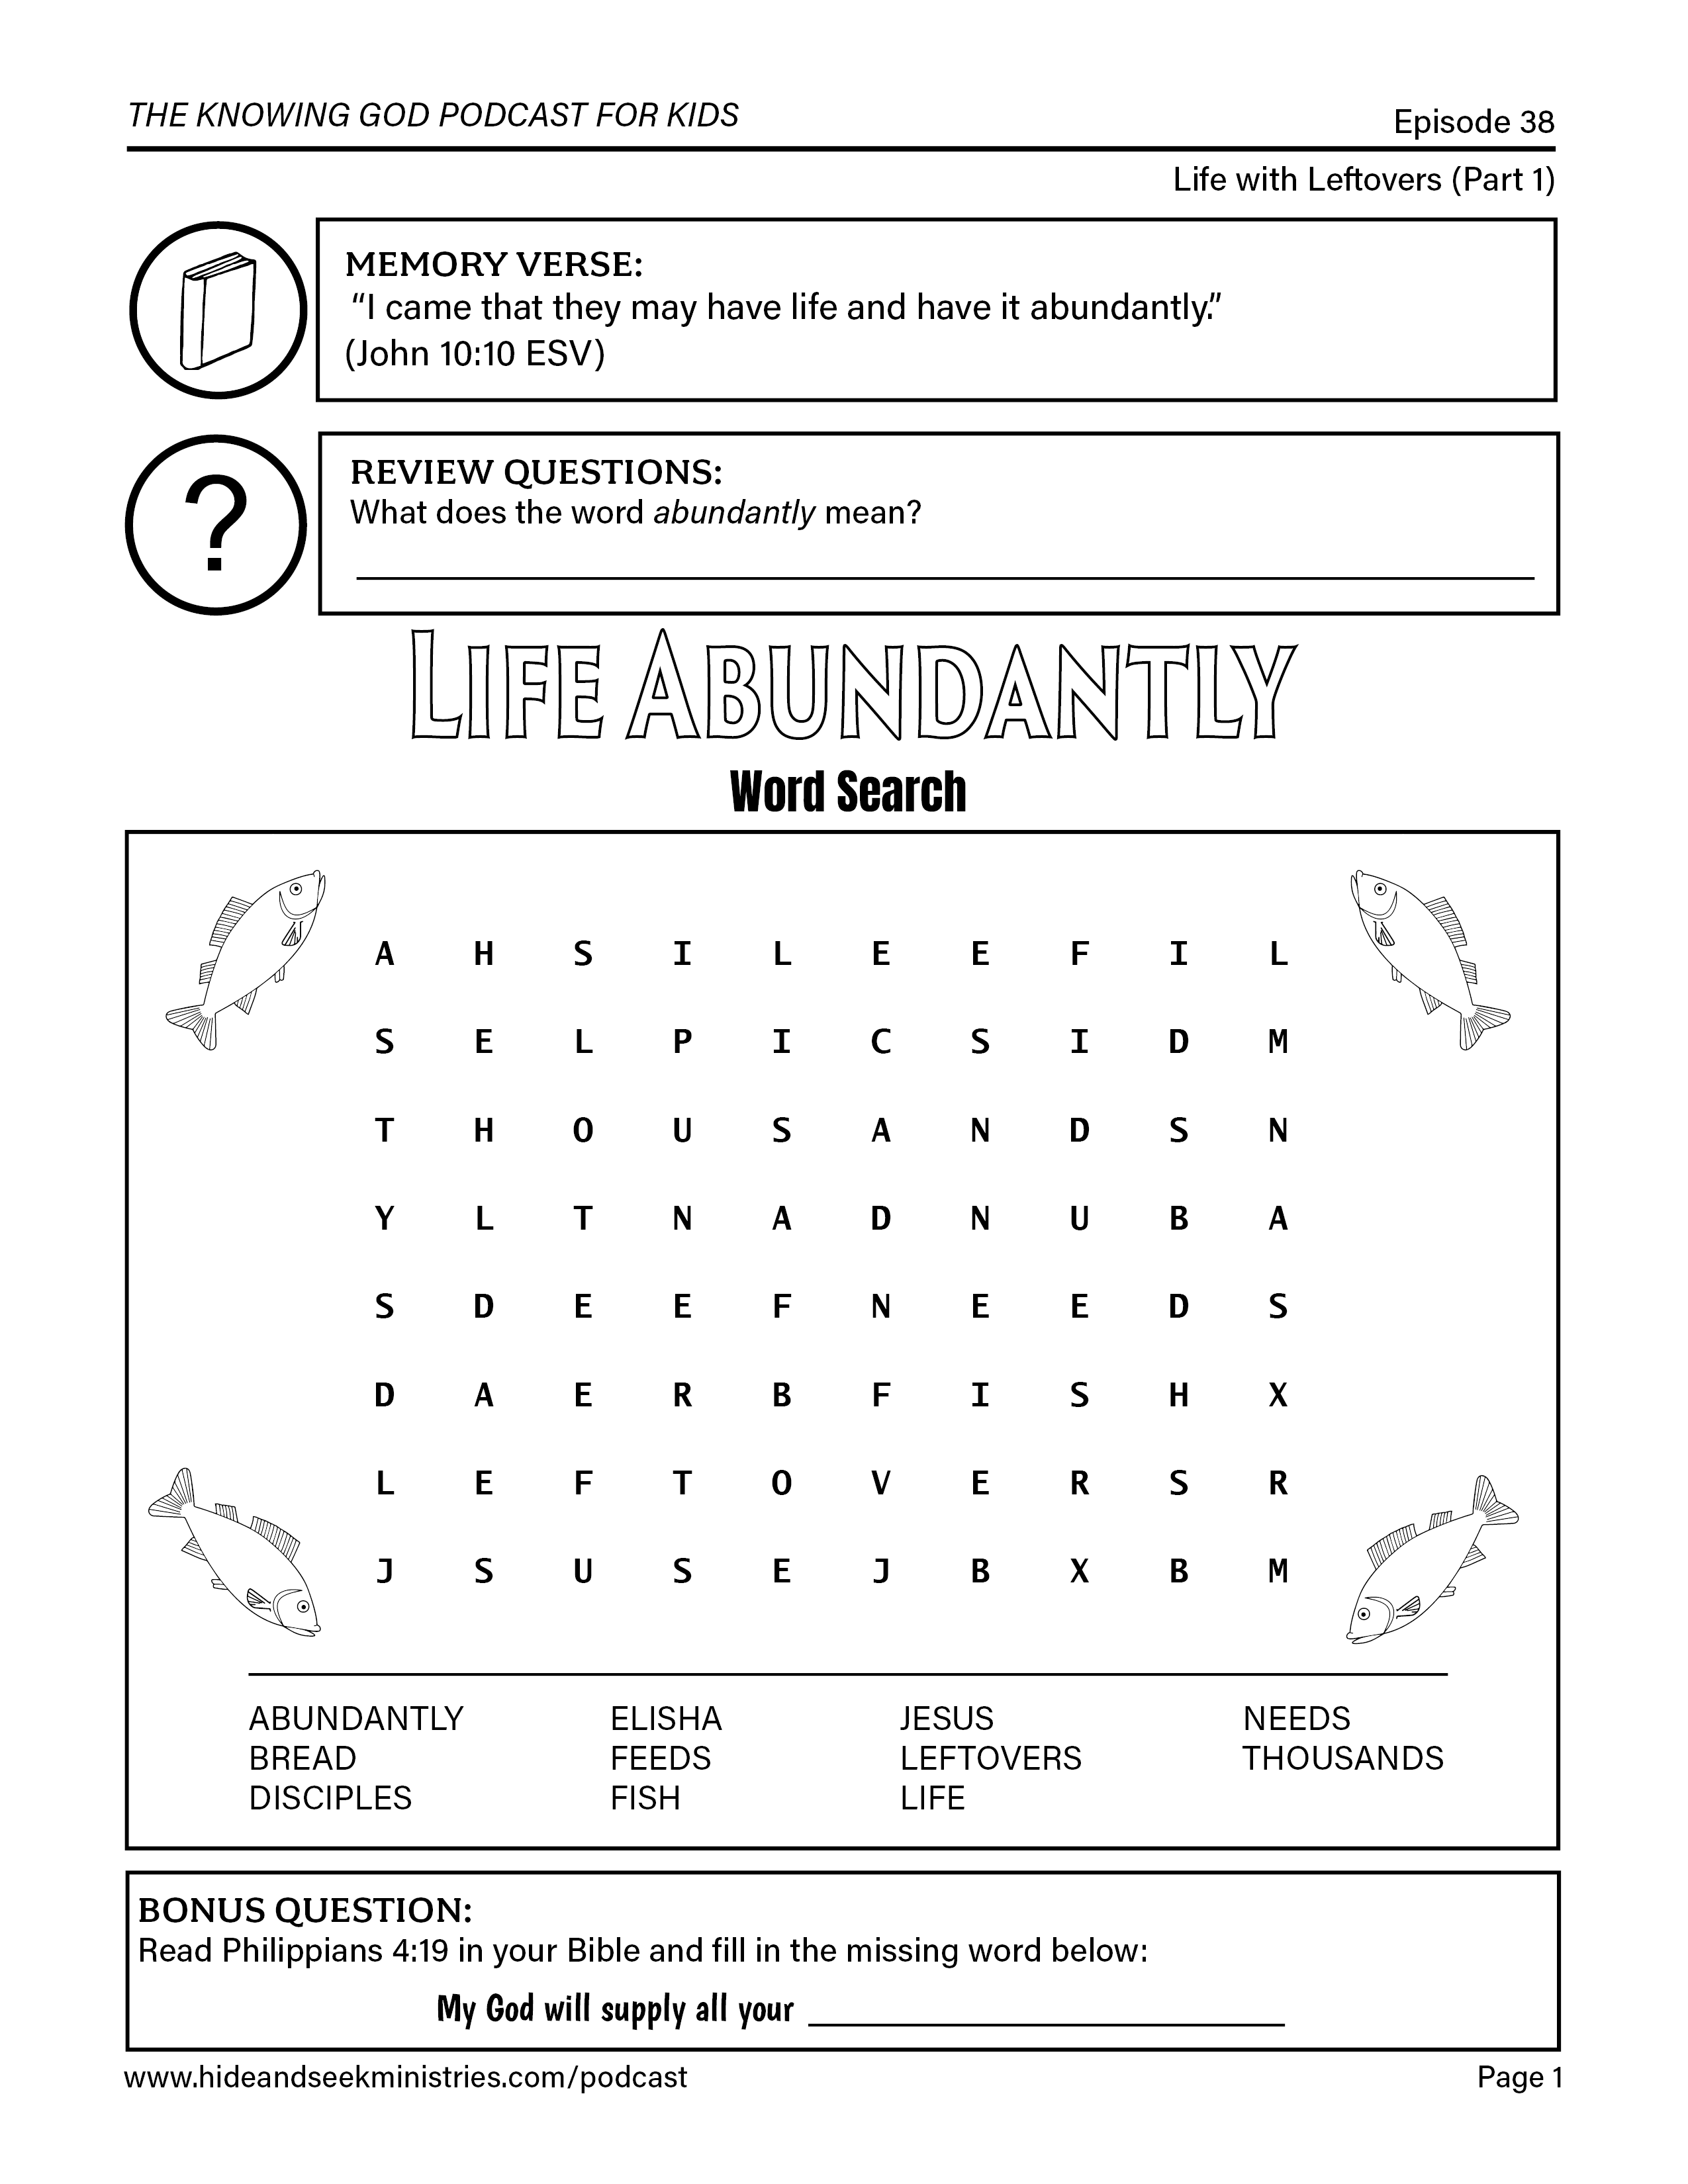 Free Bible Worksheet That Reviews Episode 38 Of The